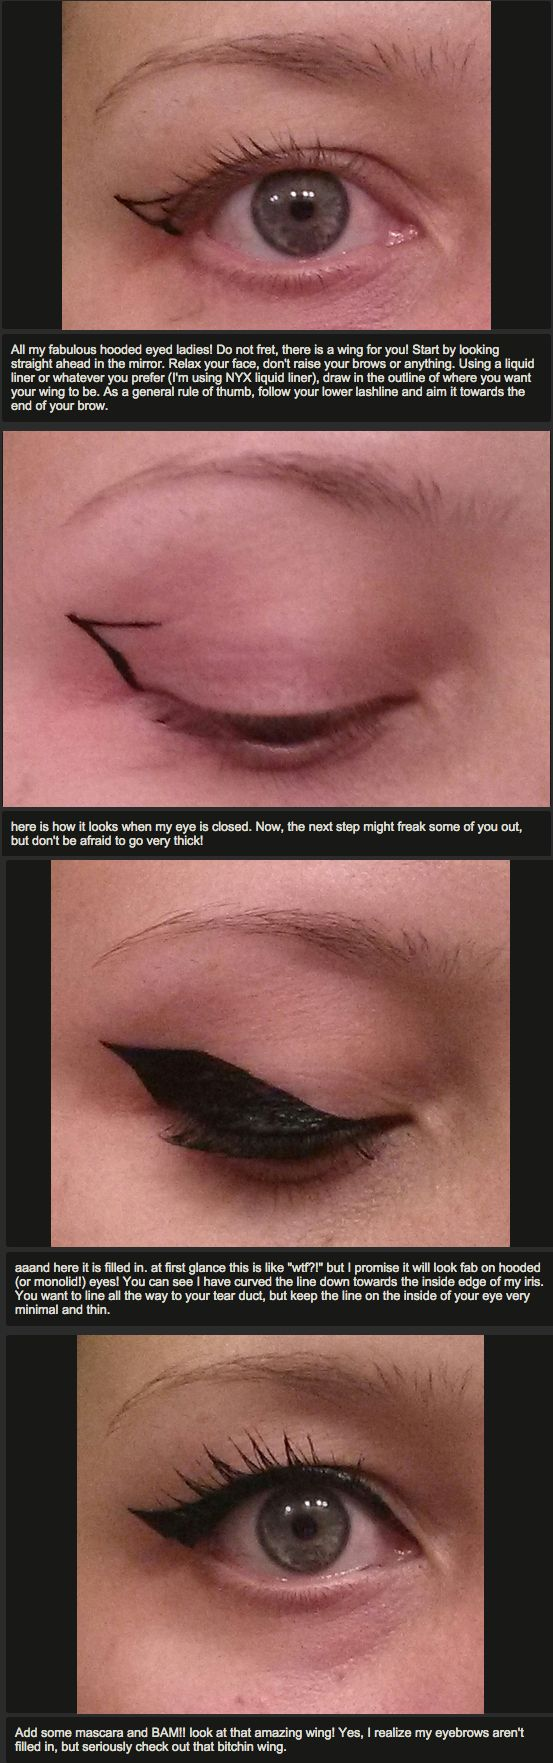 All my hooded eye beauties, here is a quick pictorial for getting that prefect wing.